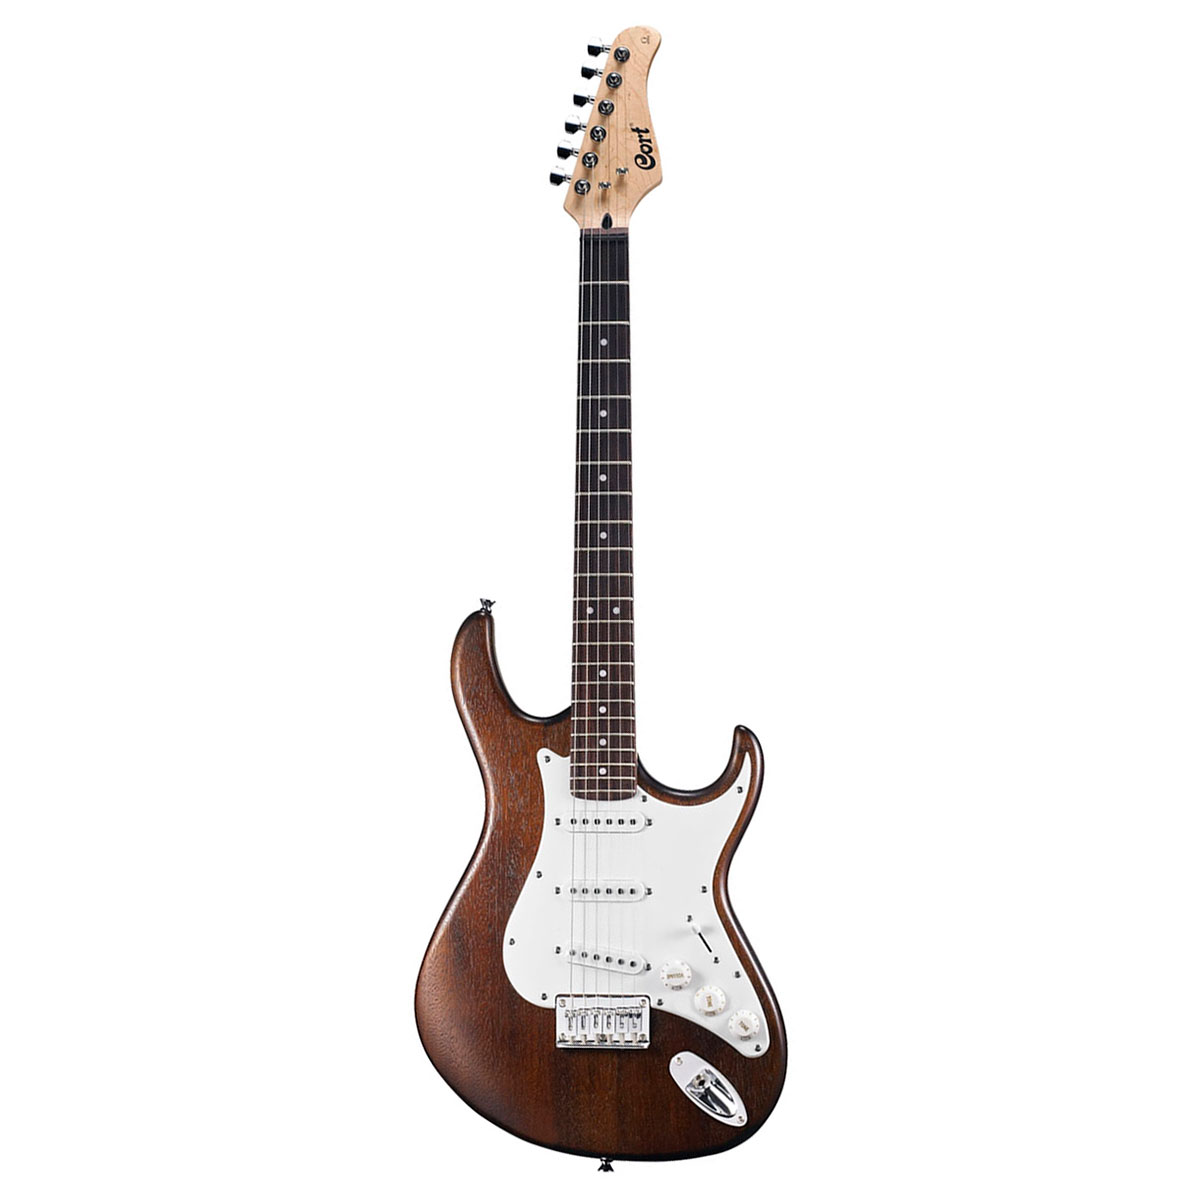 Cort G 100 OPW - Guitarra eléctrica tipo stratocaster